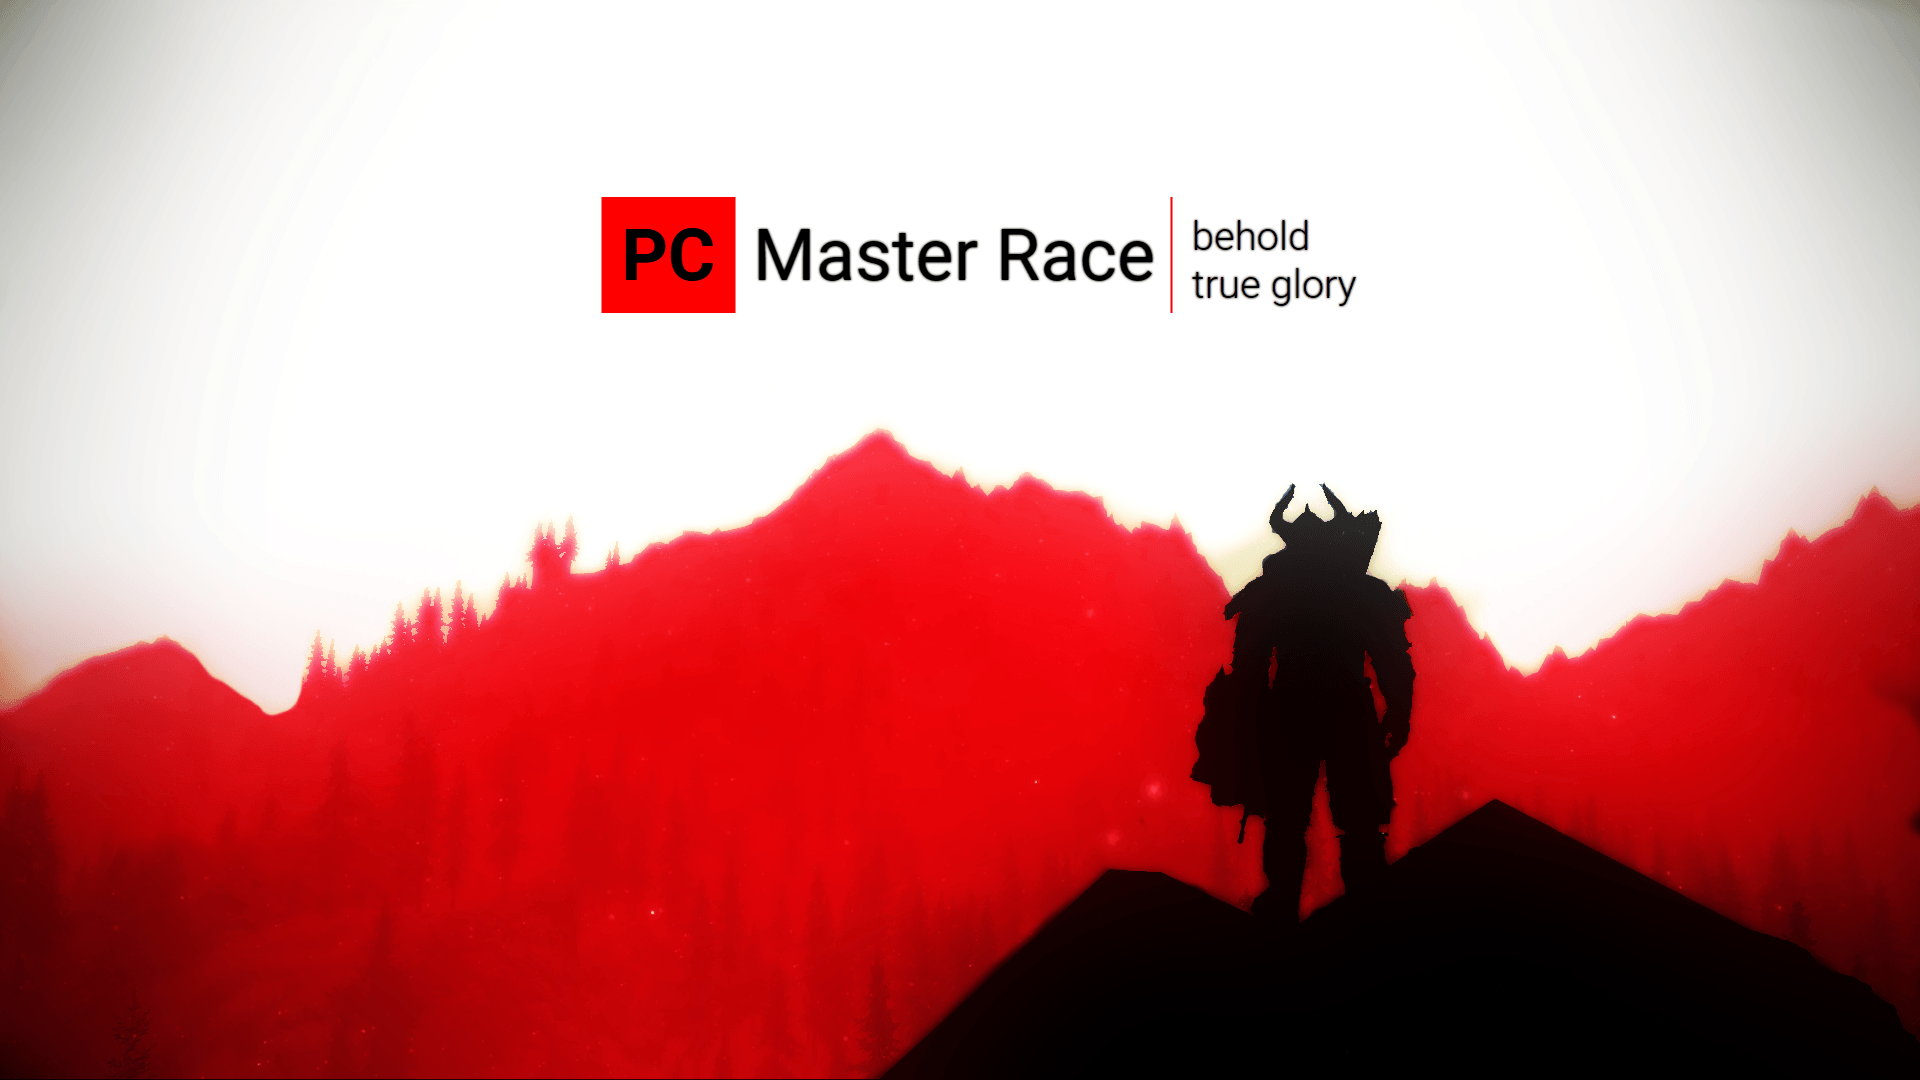 Red Pc Gaming Master Race Wallpapers Top Free Red Pc Gaming